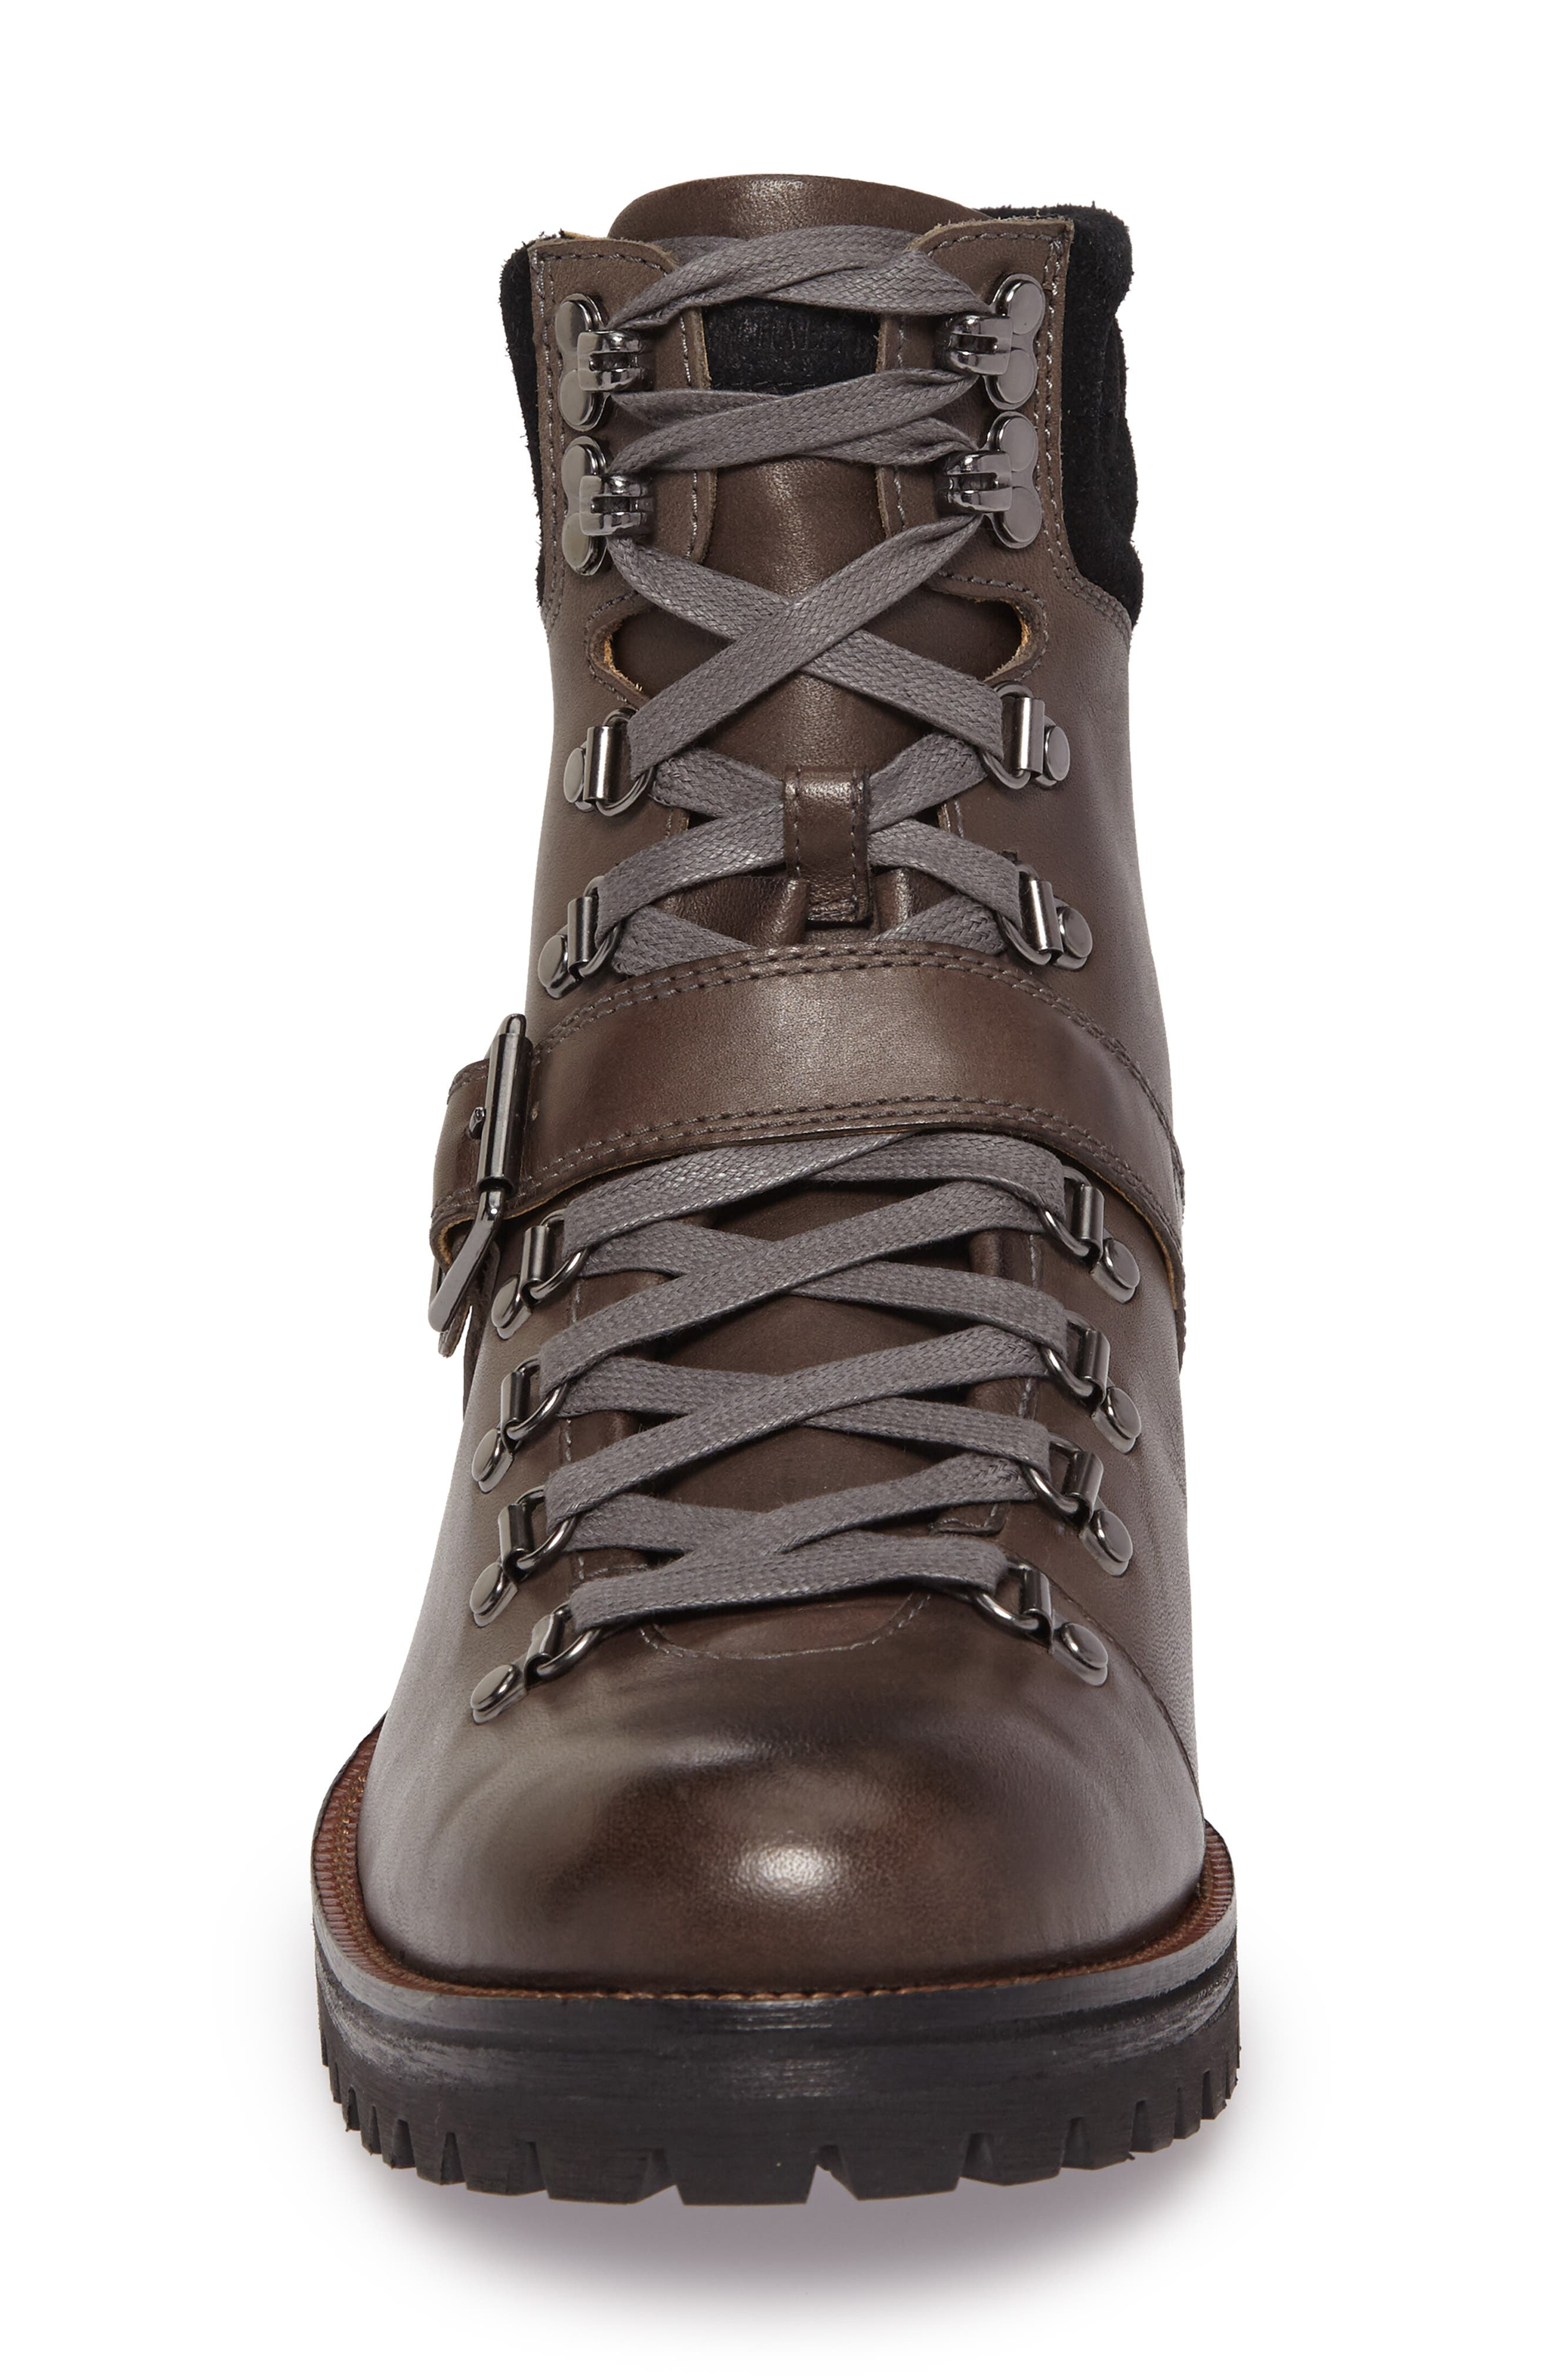 Storm Lug Hiker Boot,                             Alternate thumbnail 4, color,                             GREY LEATHER